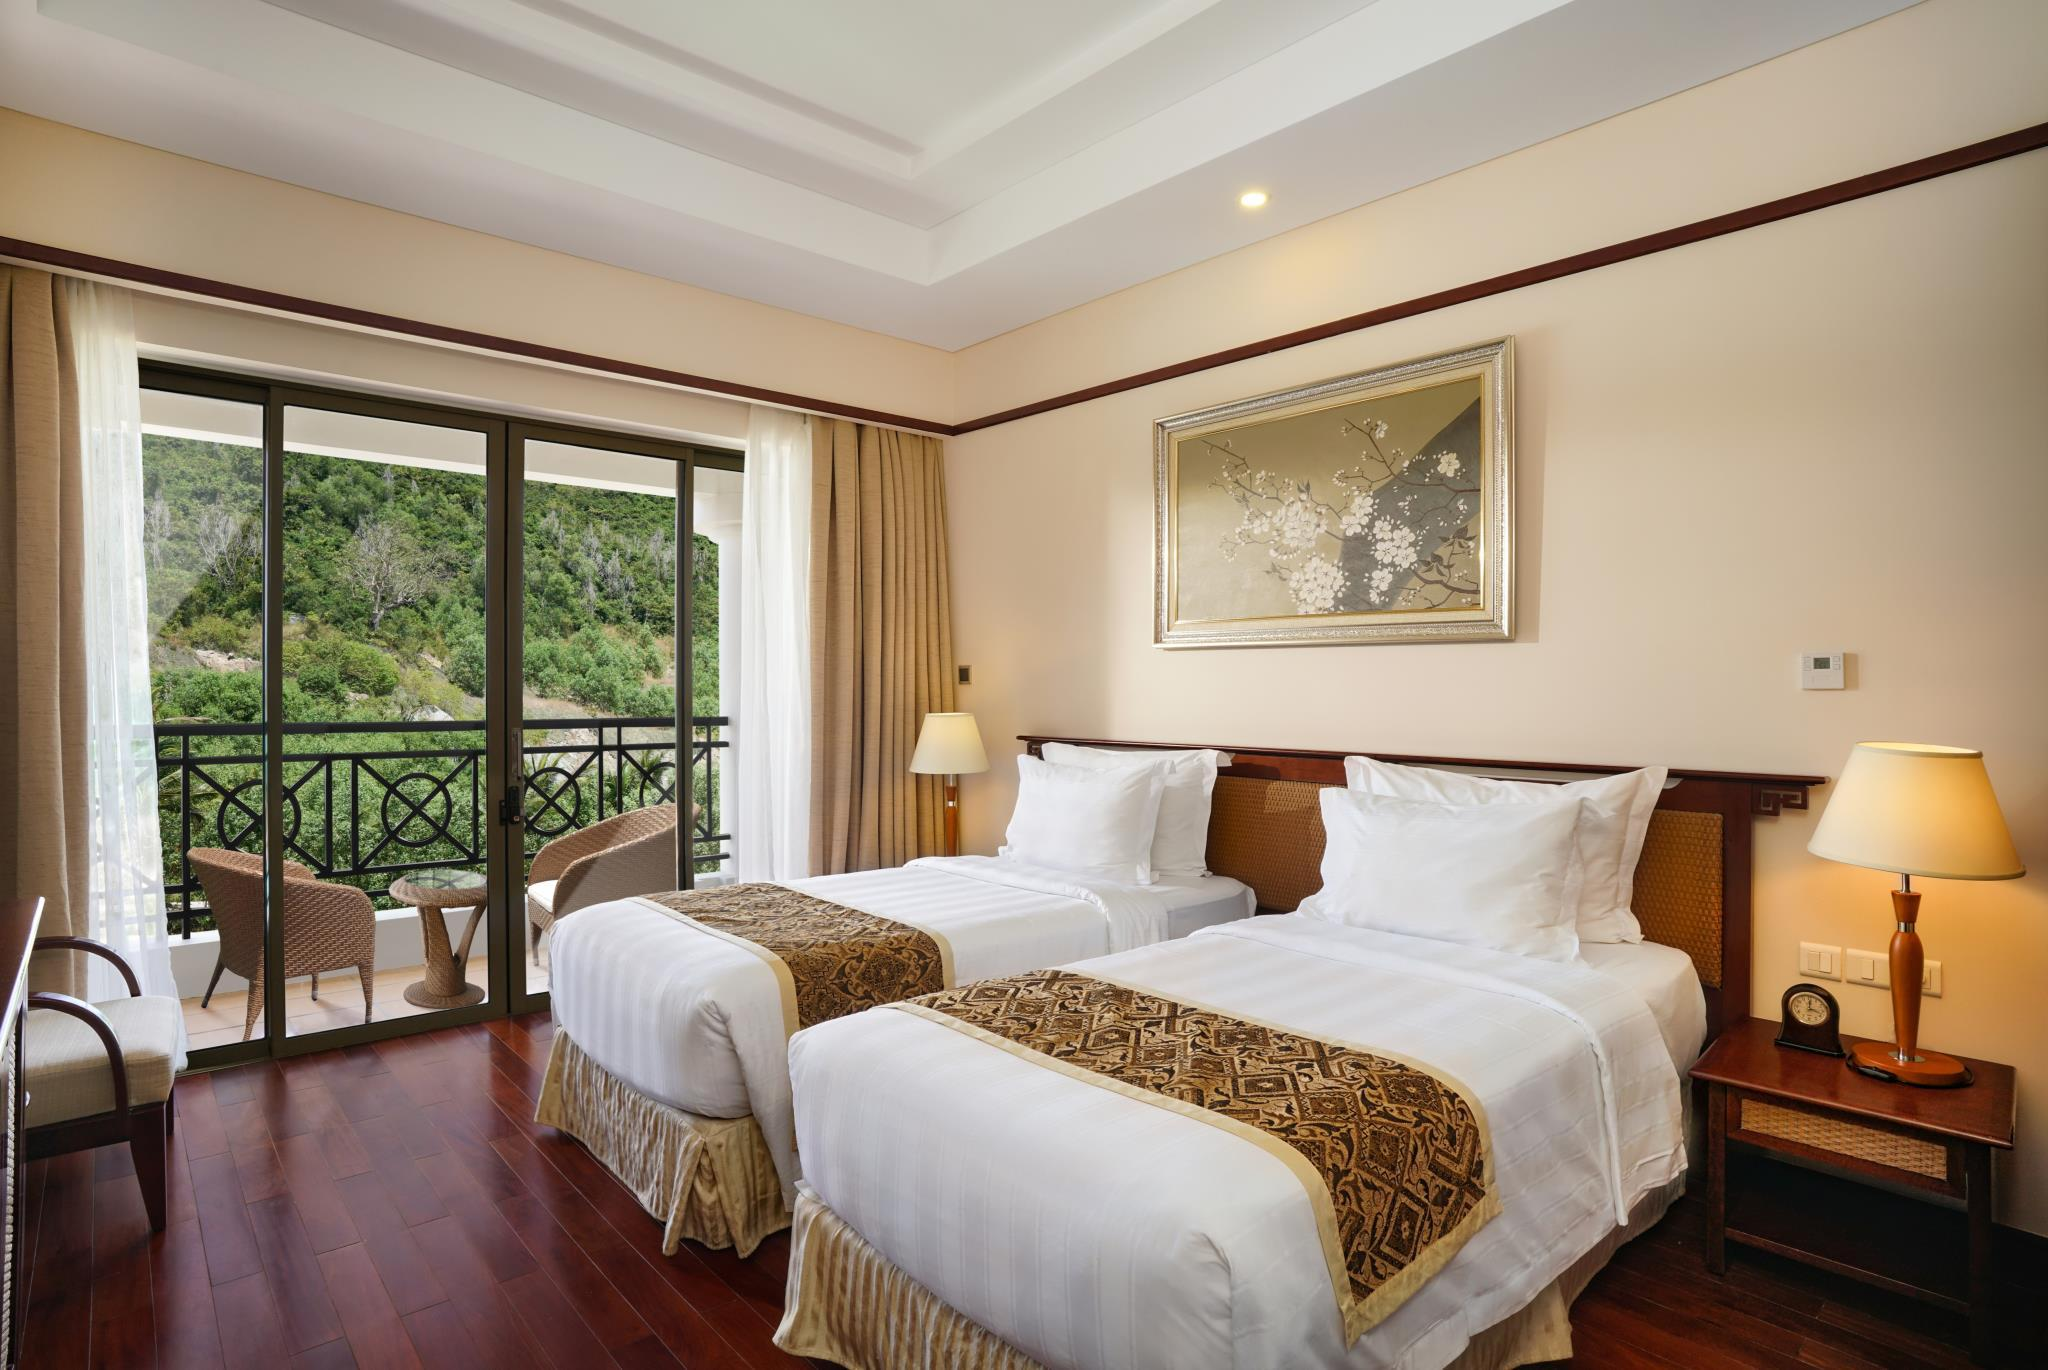 Phòng Deluxe Hai Giường Đơn (Deluxe Twin Room)